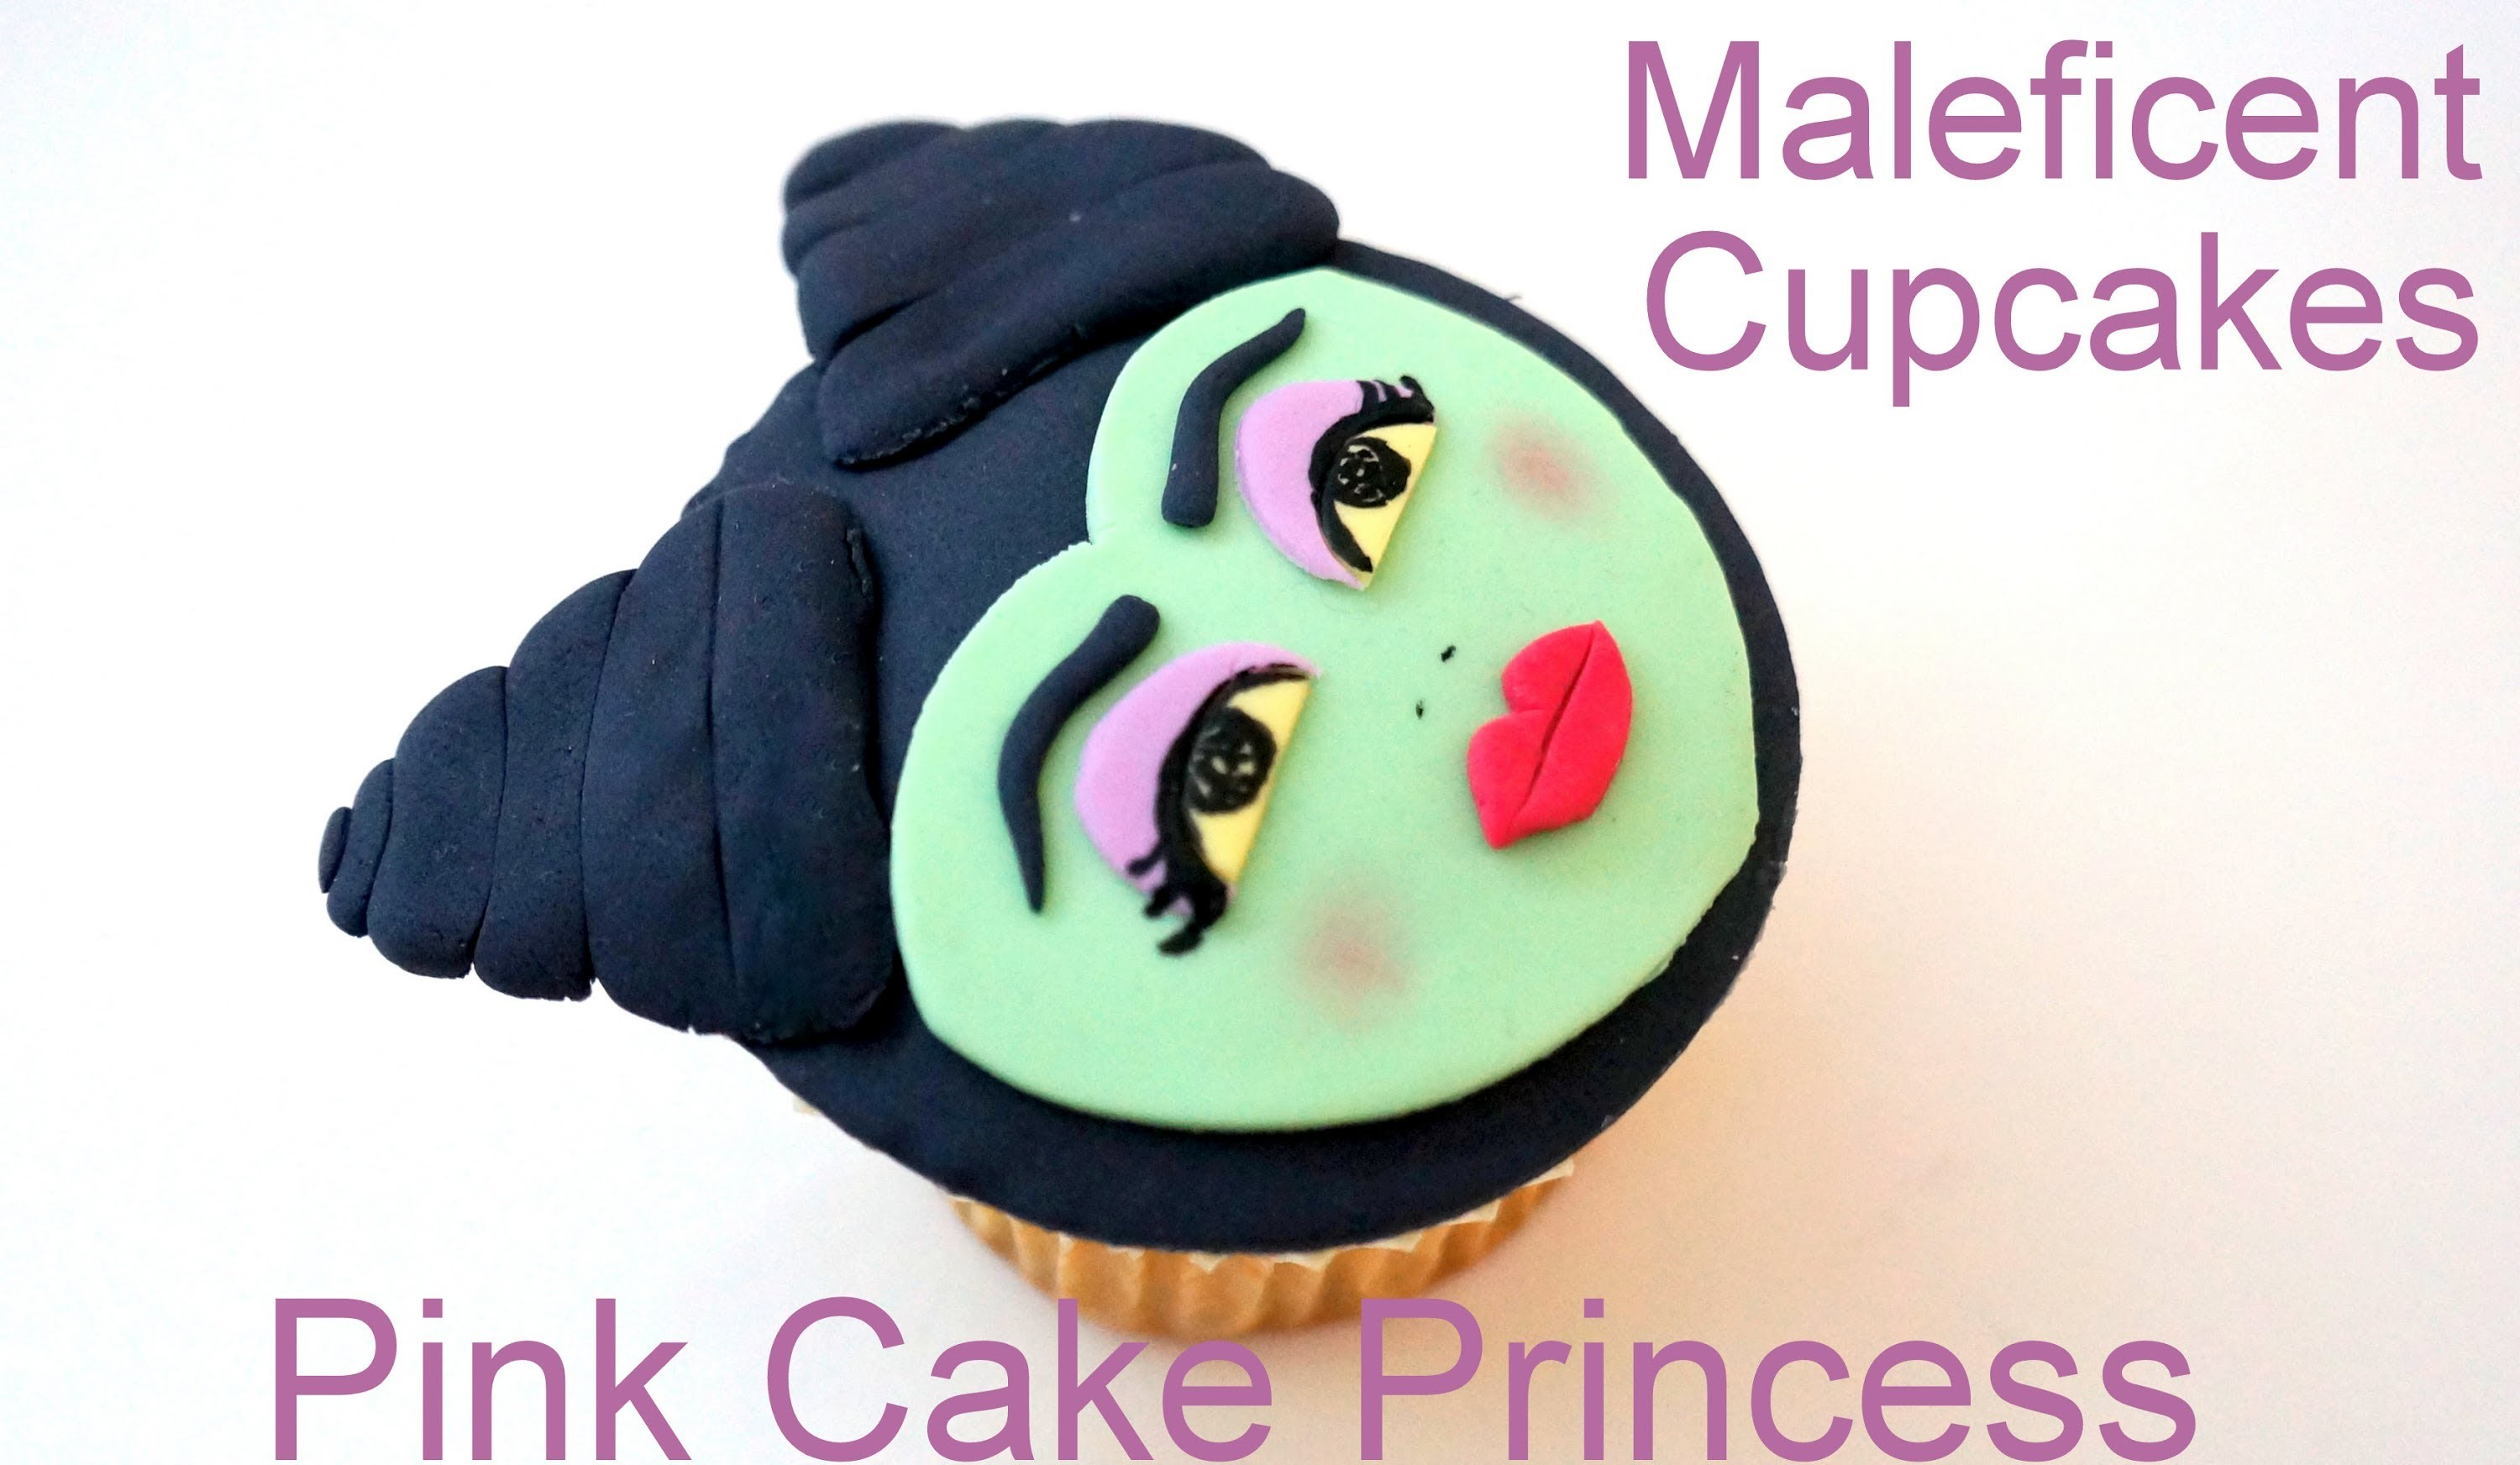 Halloween Maleficent Cupcake Decorating How to by Pink Cake Princess